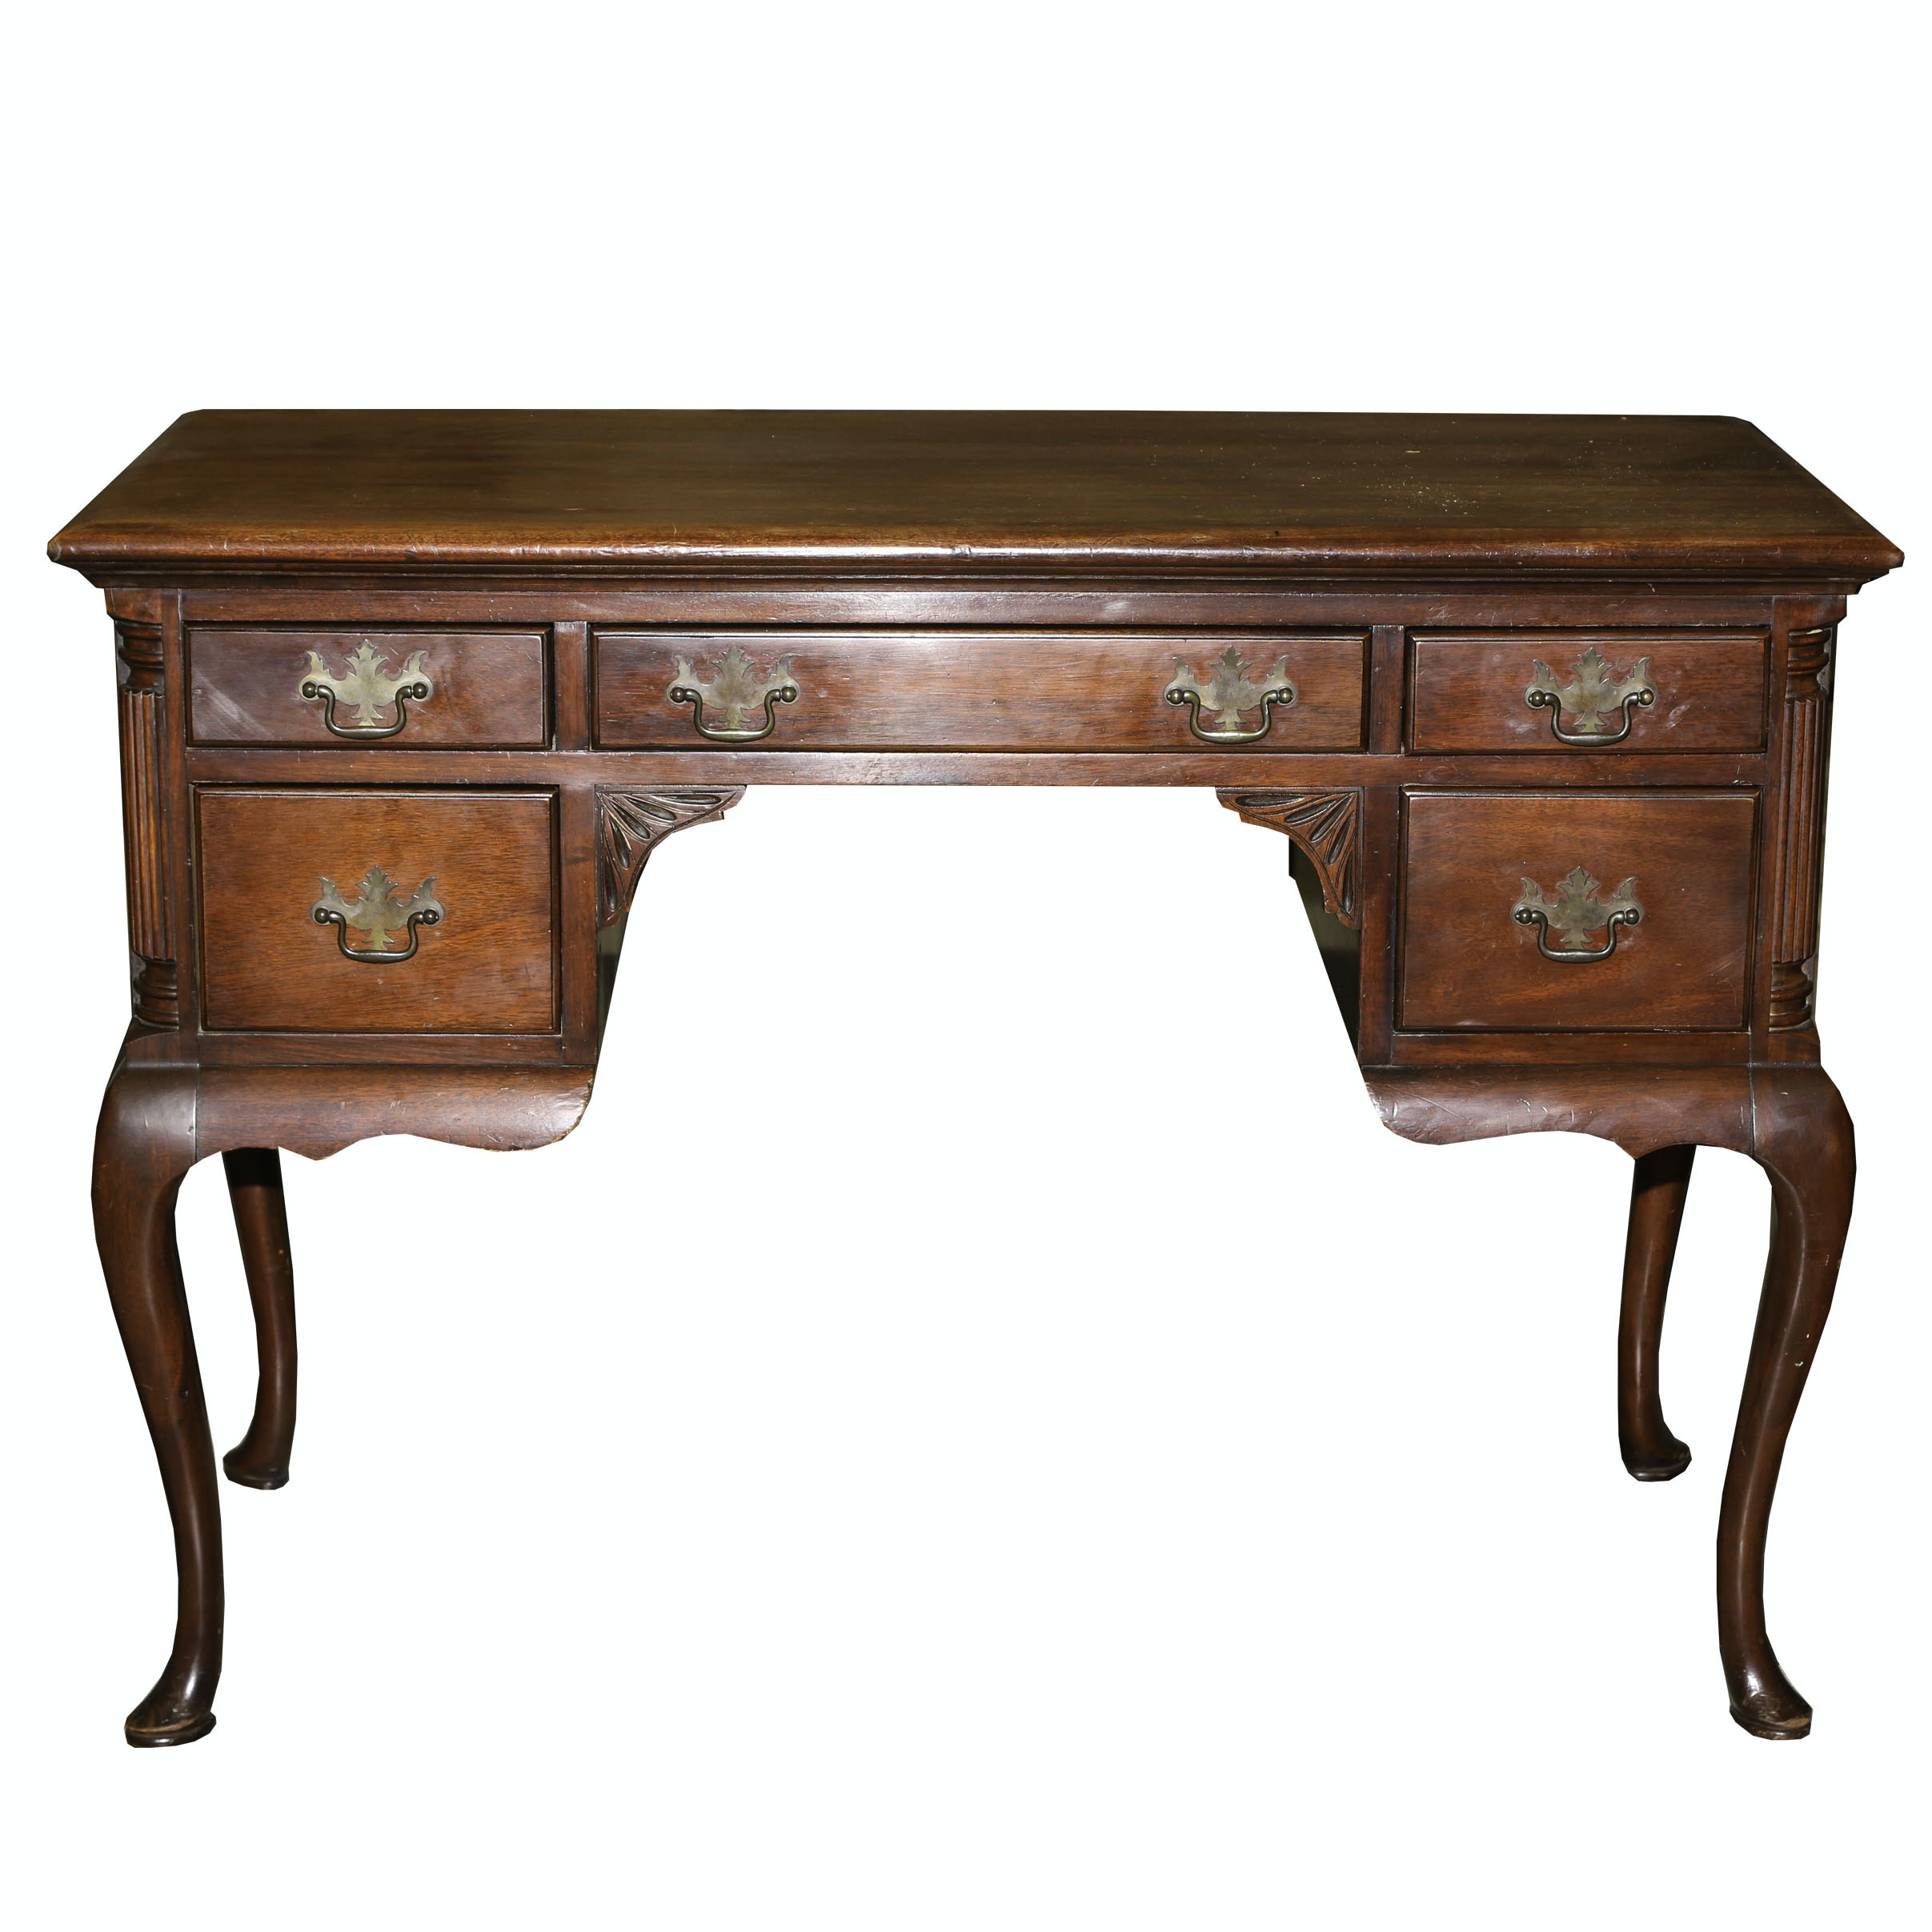 Queen Anne Style Mahogany Desk by Drexel, Mid-20th Century